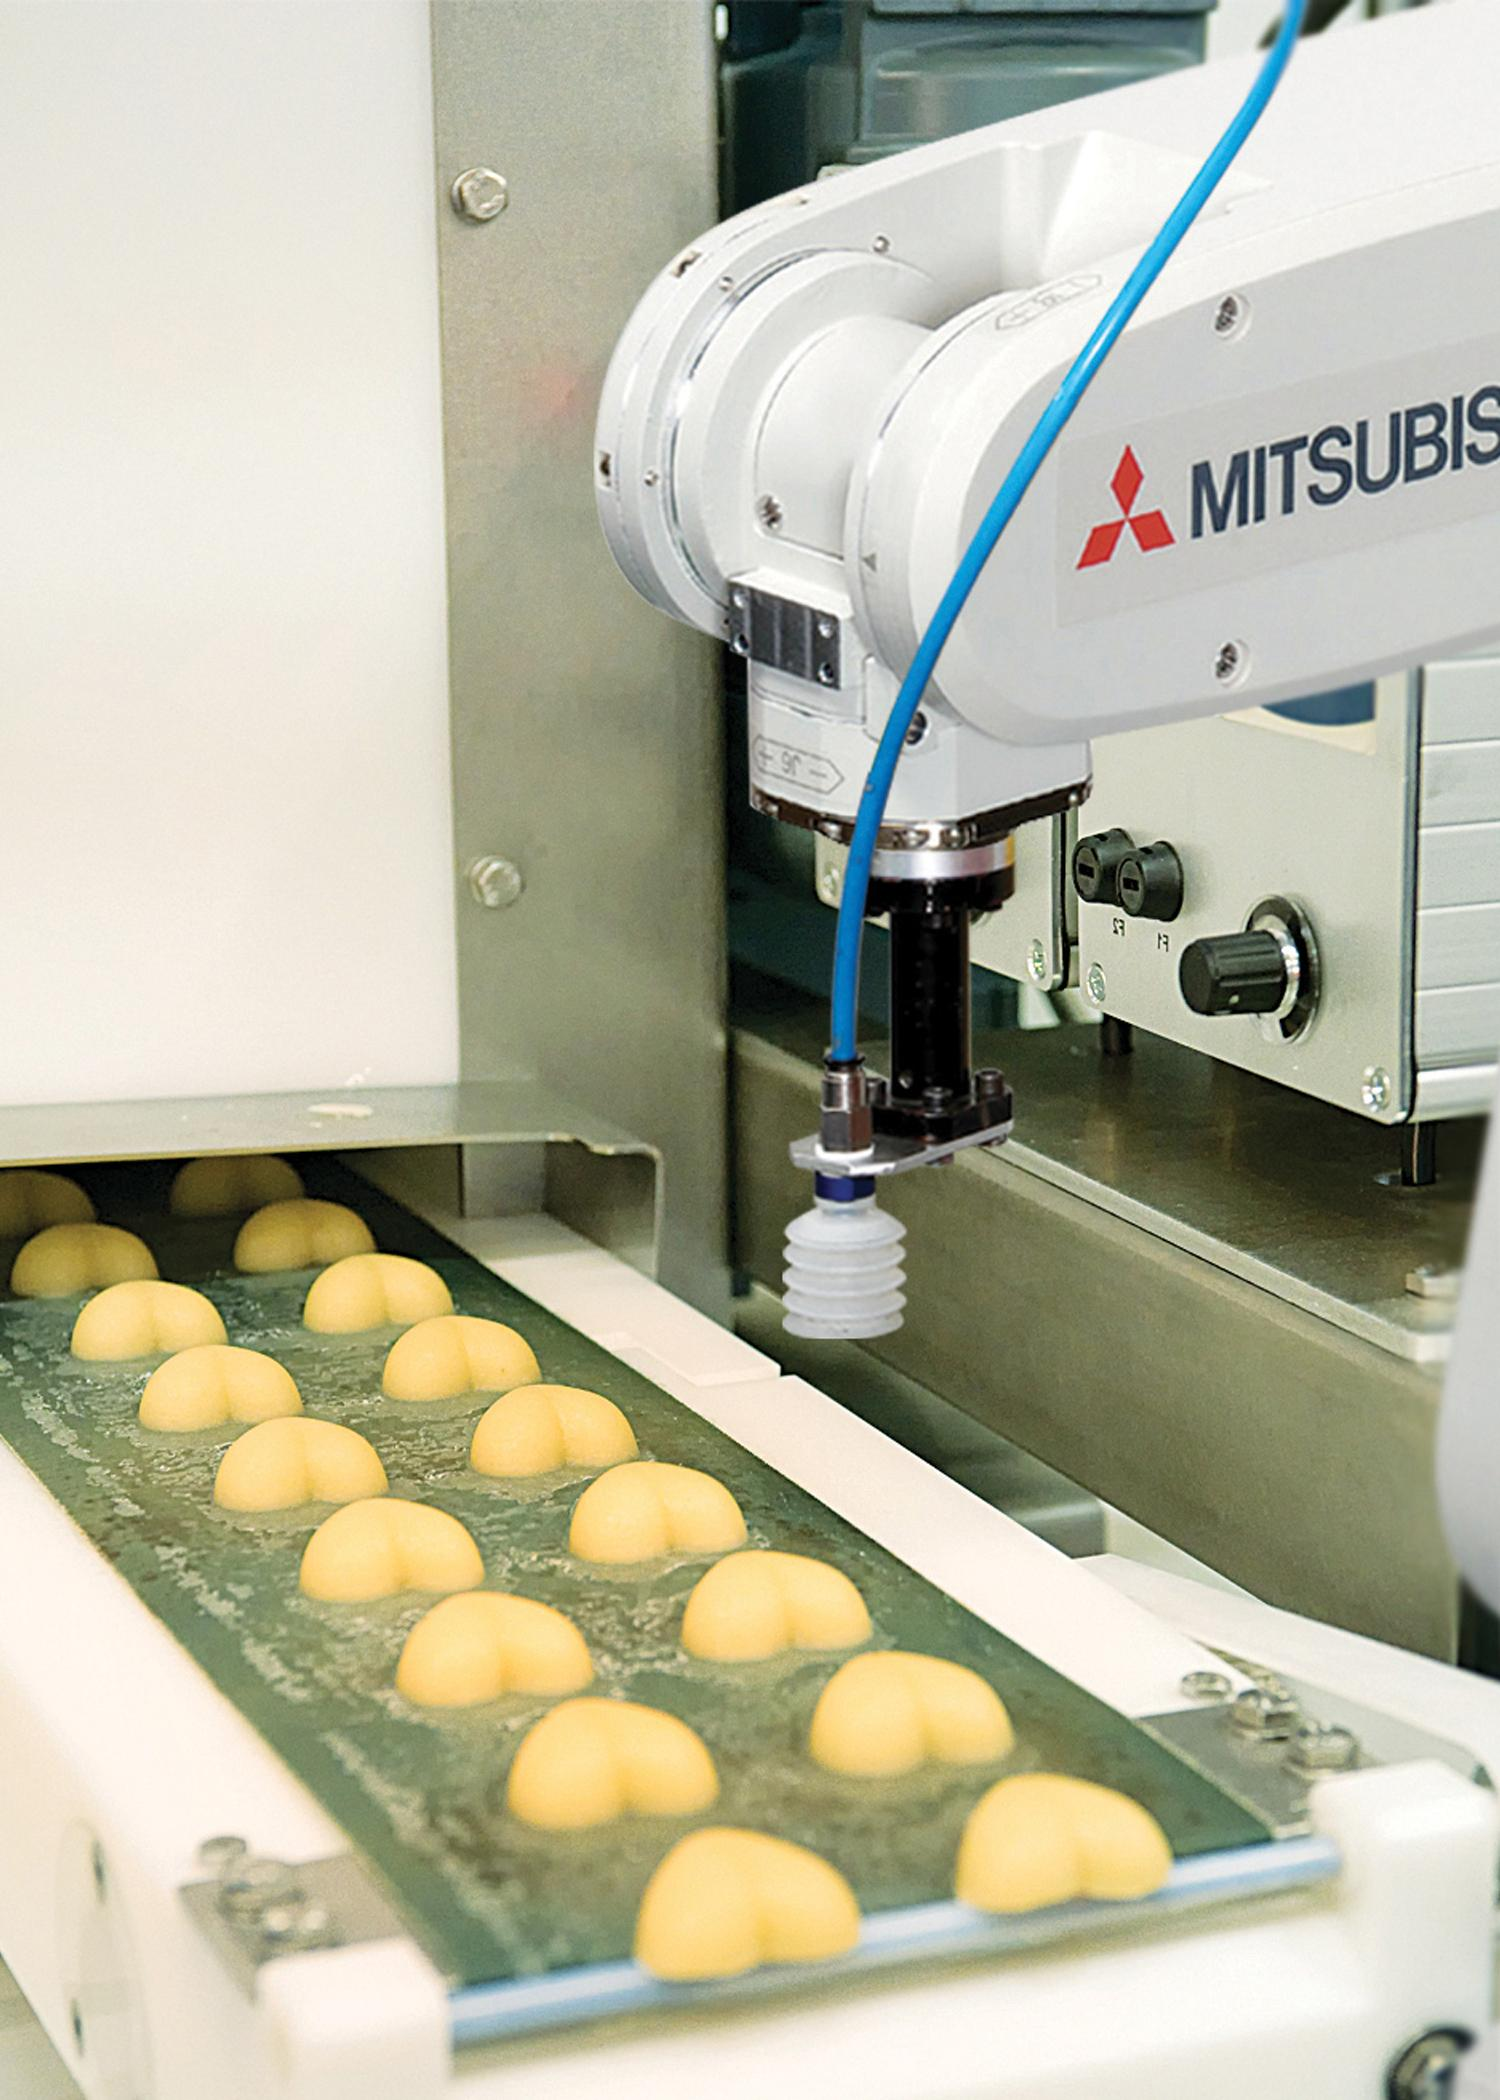 The constant pressure on costs in the food industry means it has a long history of innovating, so is likely to embrace Industry 4.0 quickly and enthusiastically. Source: Mitsubishi Electric Europe BV Automation Systems Division, UK